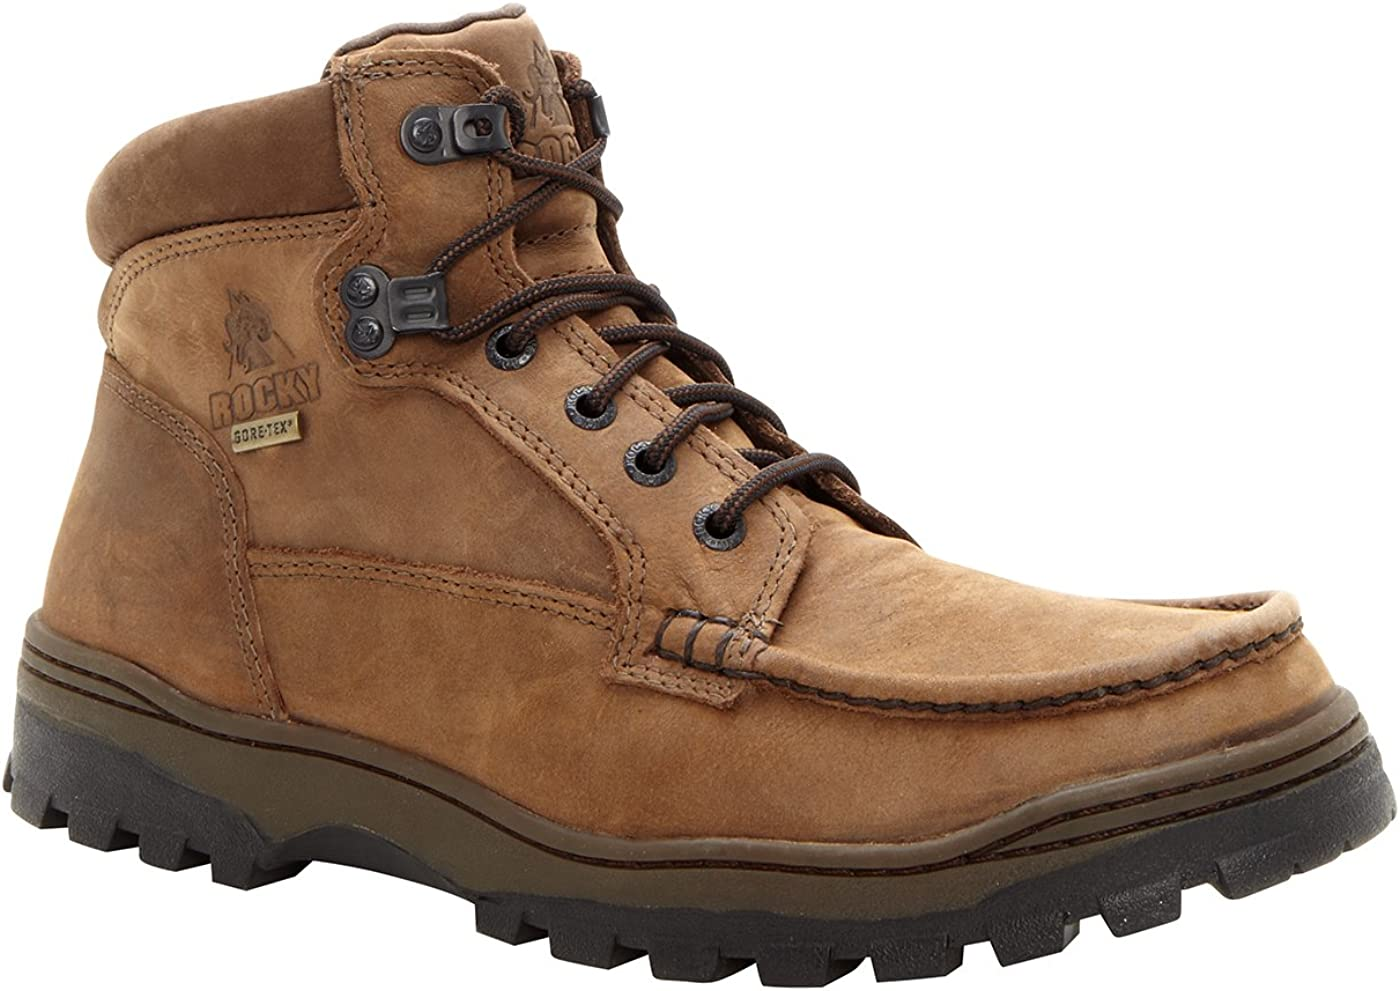 Rocky Men's Outback Gore-tex WP Moc-Toe Field Boots-8723